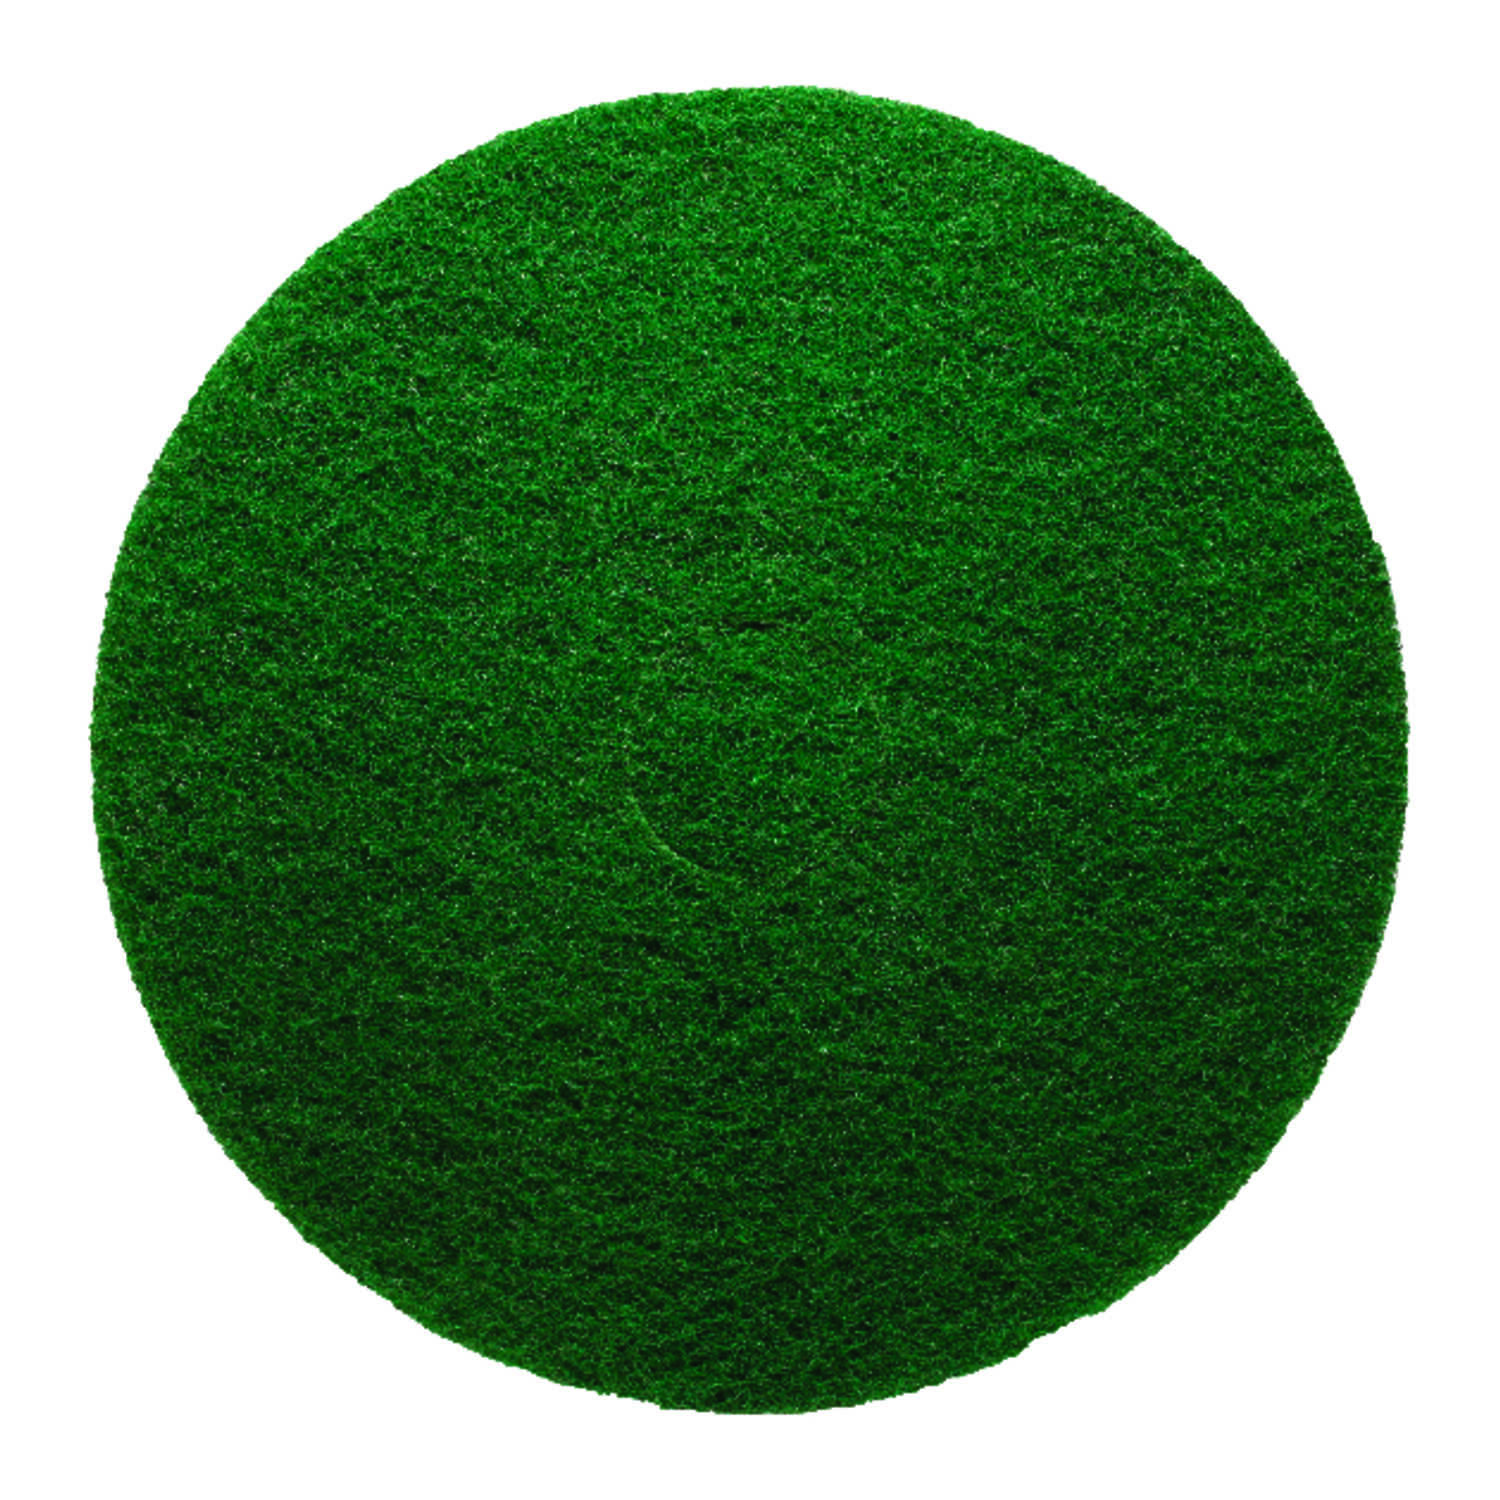 Gator  13 in. Dia. Non-Woven Natural/Polyester Fiber  Floor Pad Disc  Green